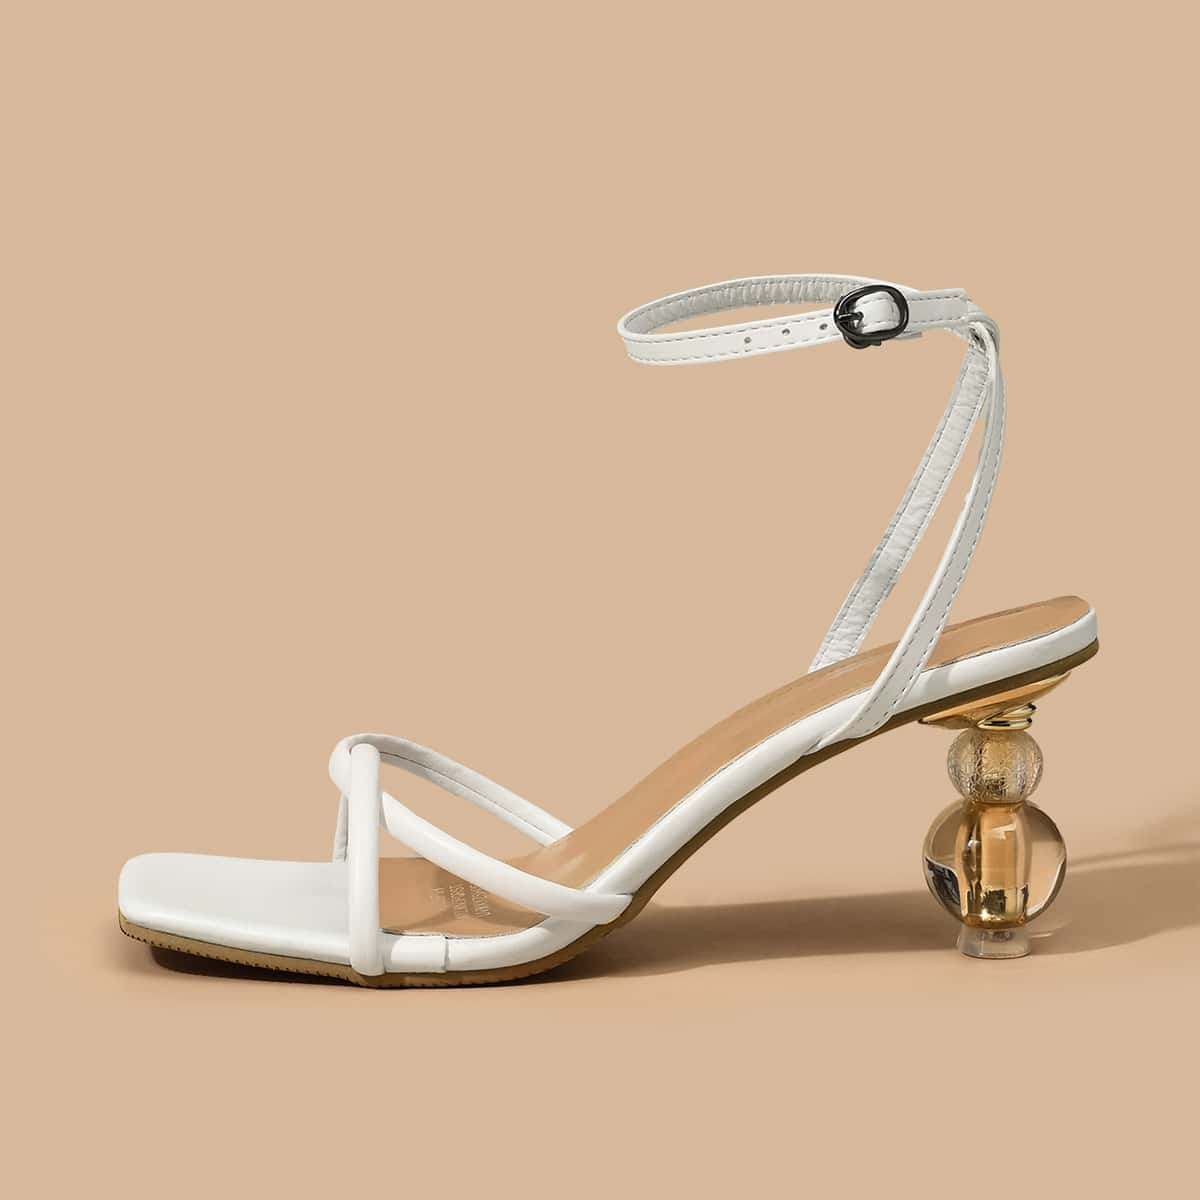 Plain Sculptural Heeled Ankle Strap Sandals, SHEIN  - buy with discount